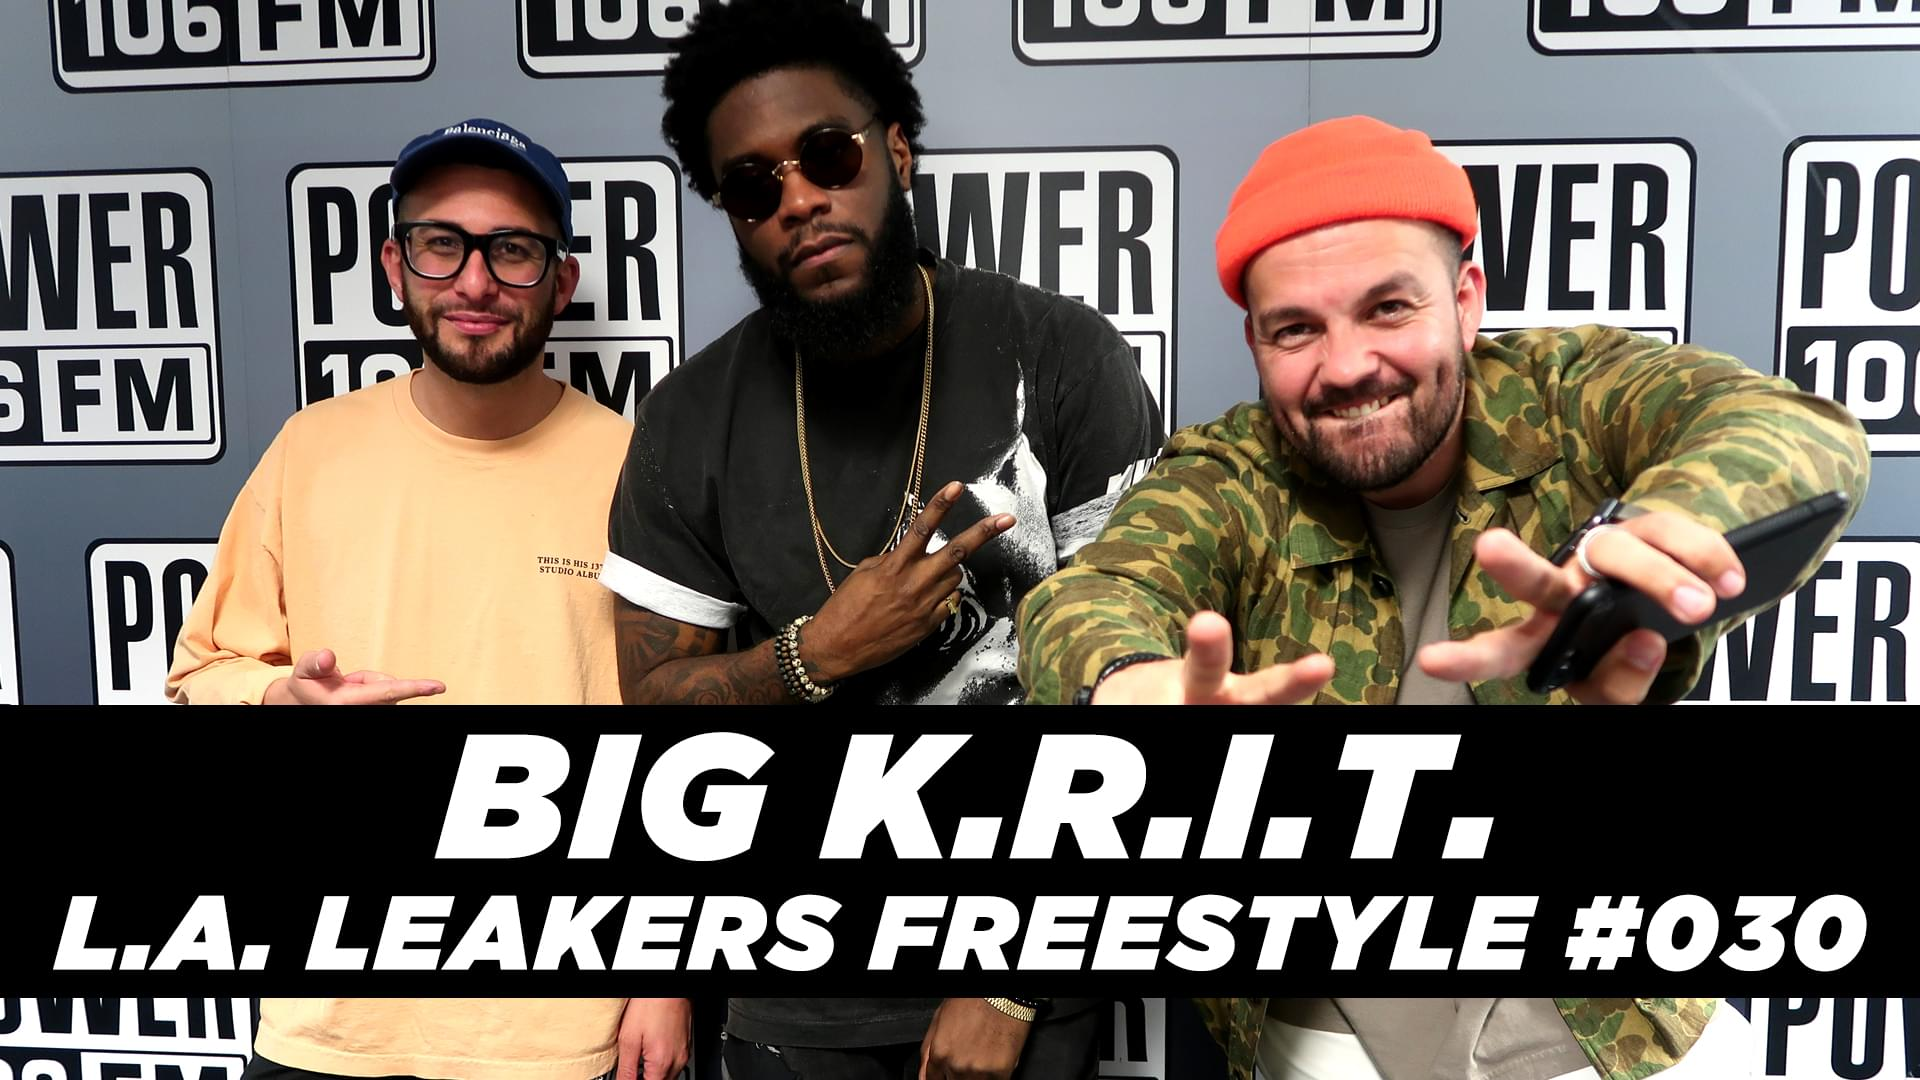 Big Krit Stops By The Liftoff To Spit Some Fire Bars With Justin Credible And Dj SourMilk